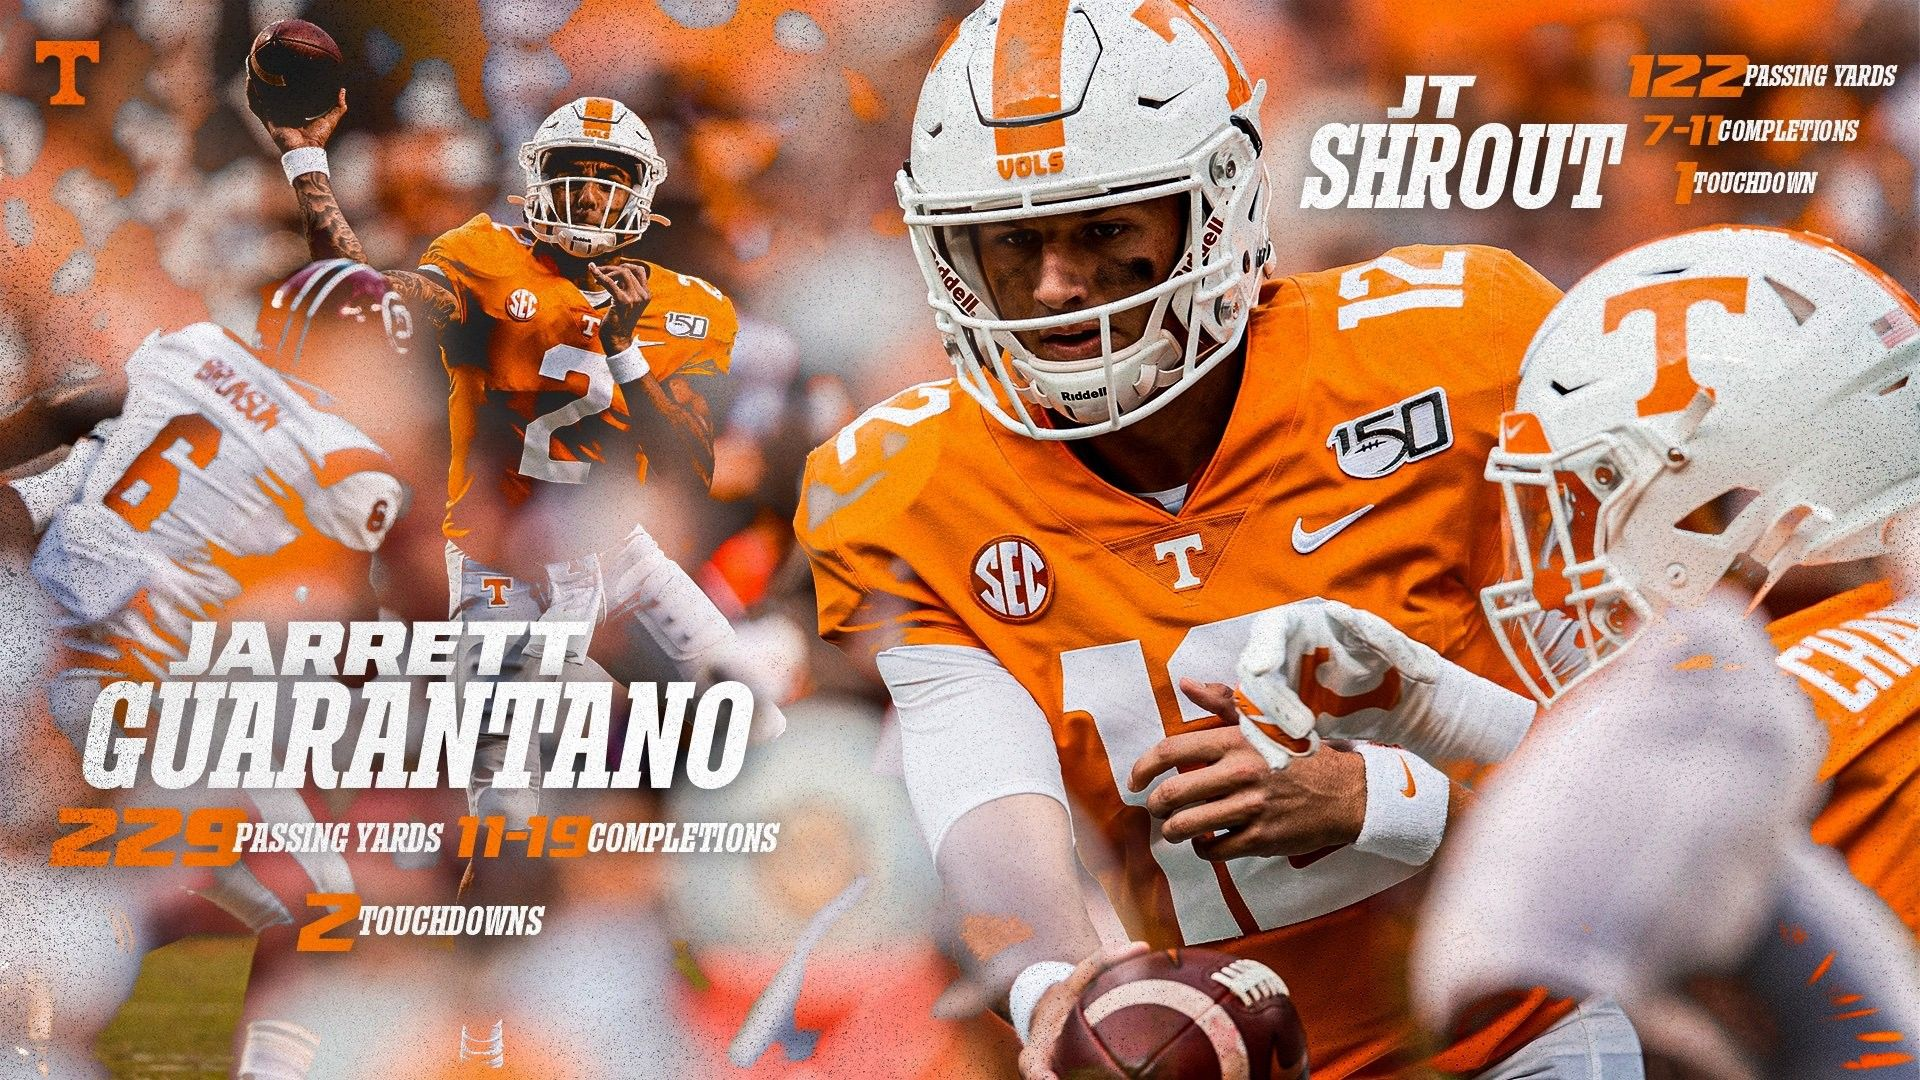 Pin by faye forbes on tennessee volunteers football images